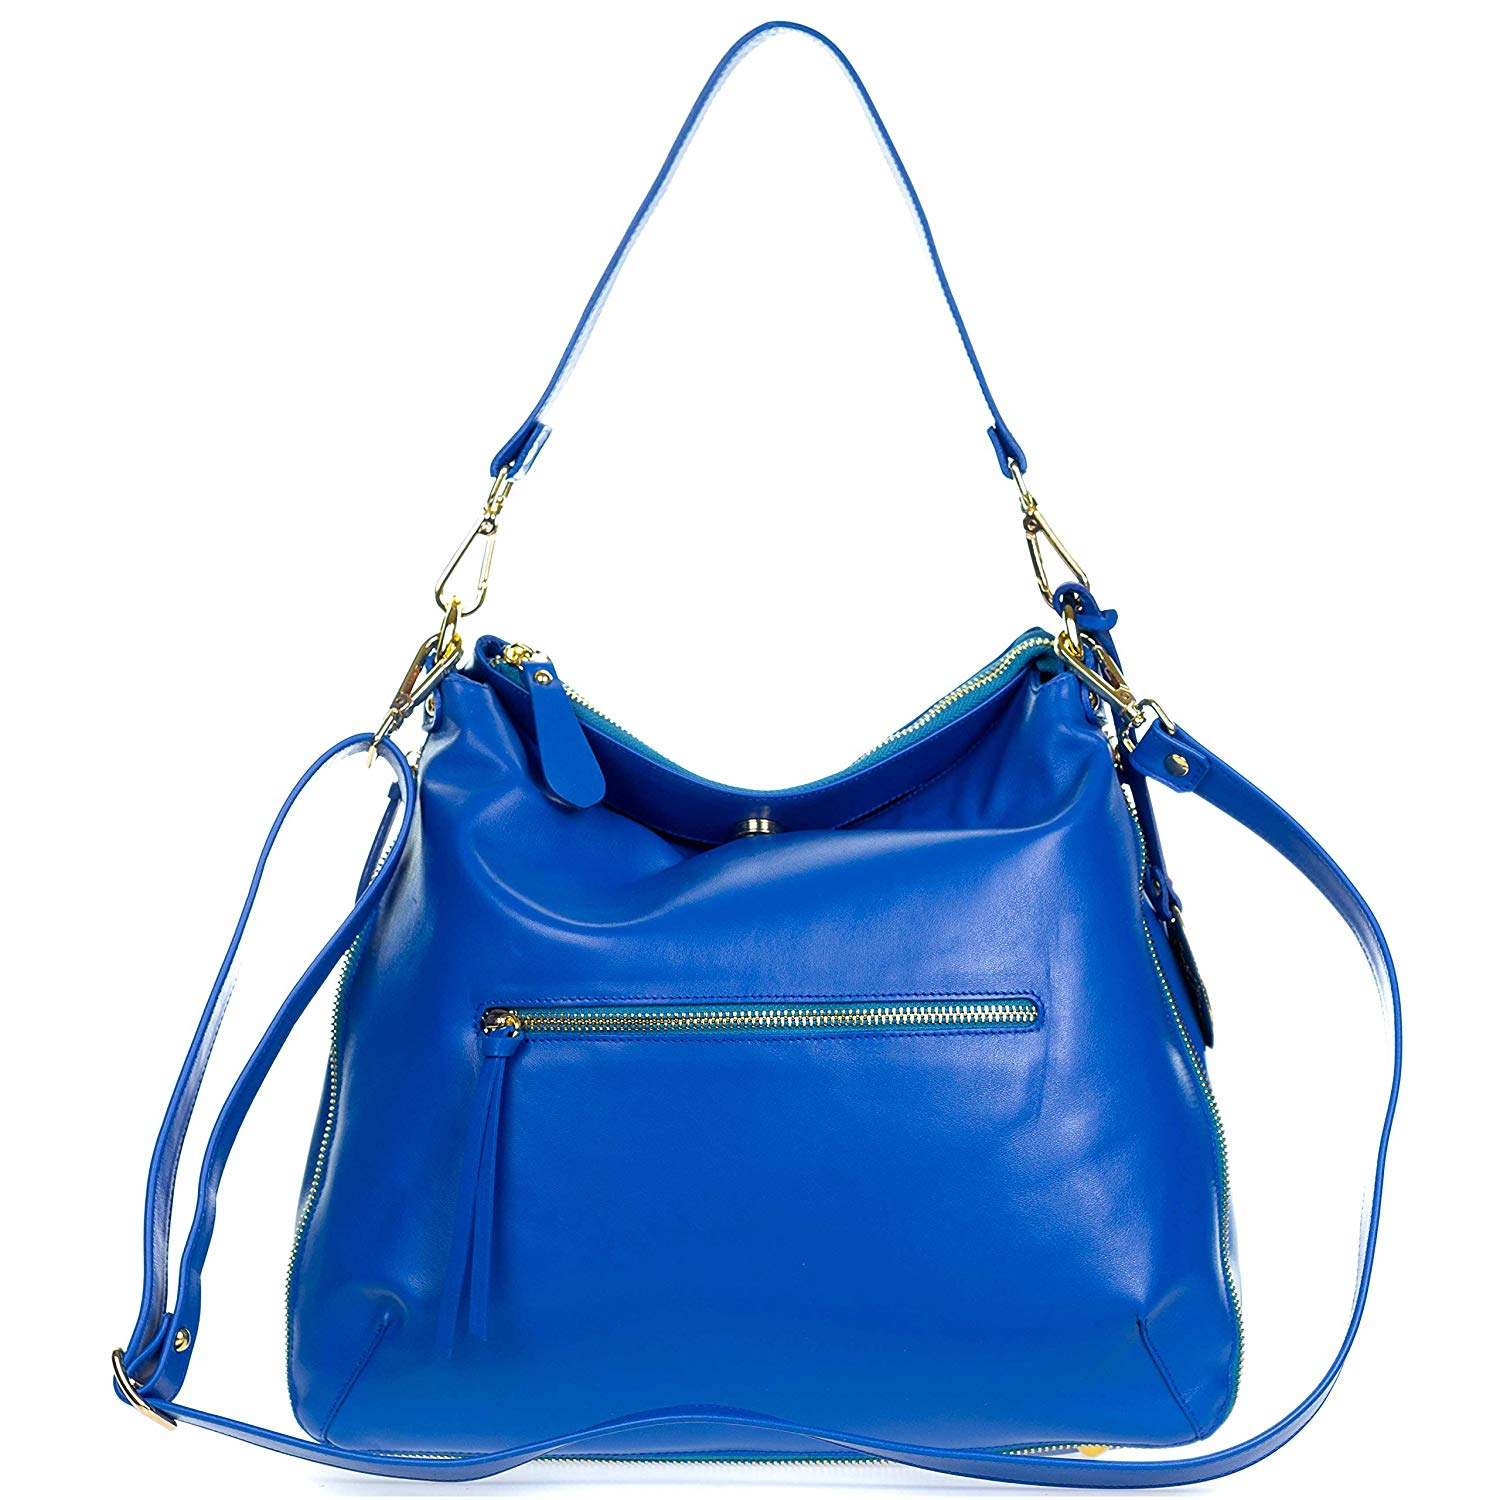 Get Quotations Giordano Italian Made Blue Leather Hobo Bag With Pocket